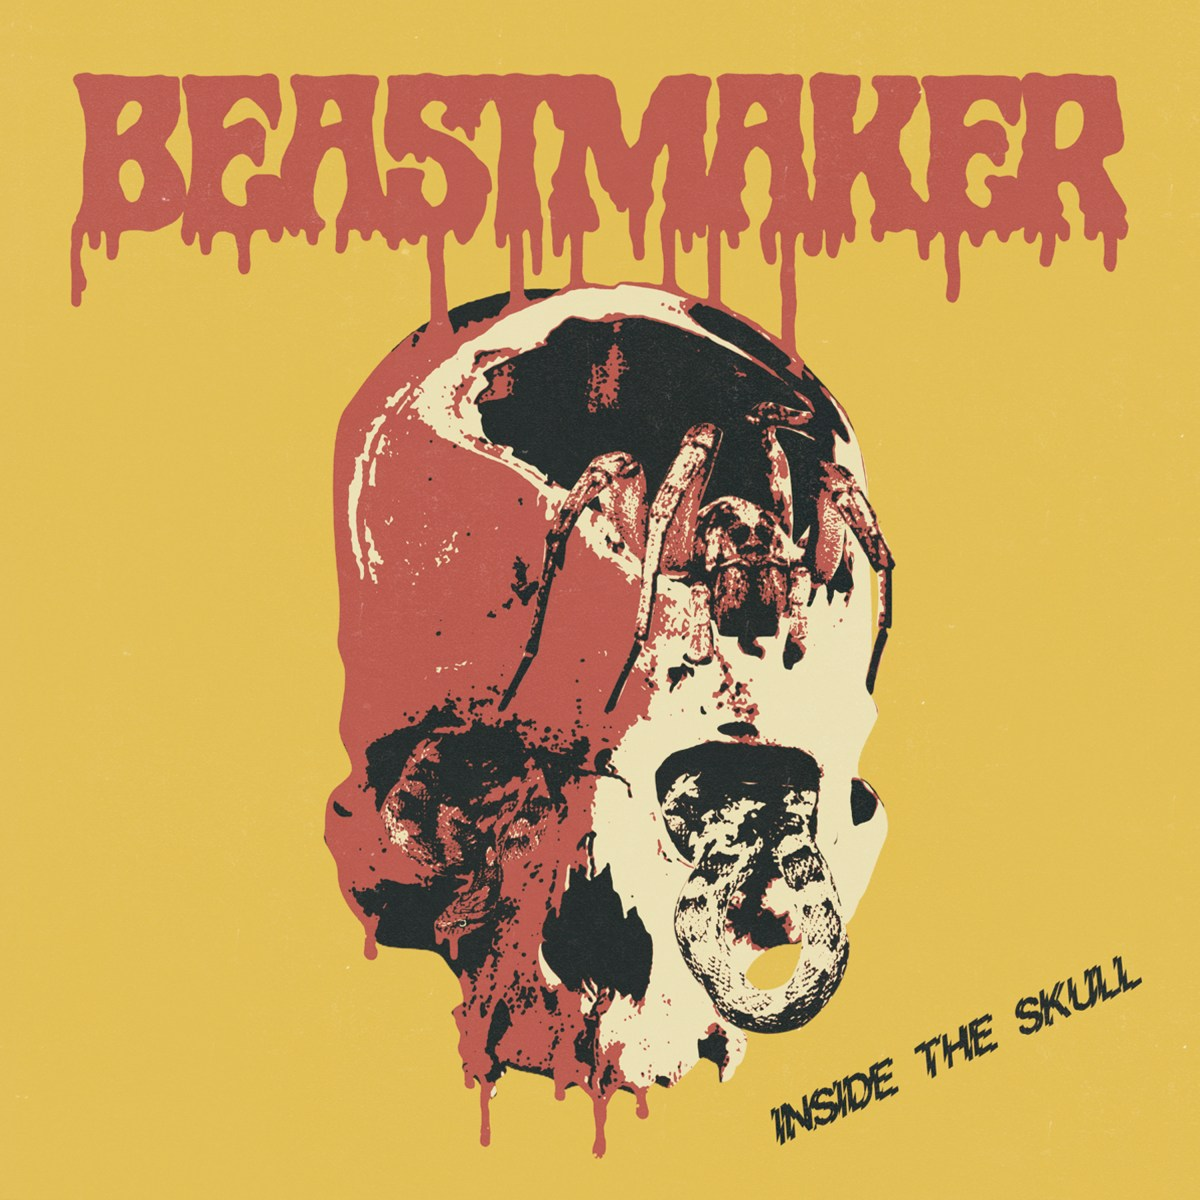 BEASTMAKER Stream Latest New Album 'Inside The Skull' Online!